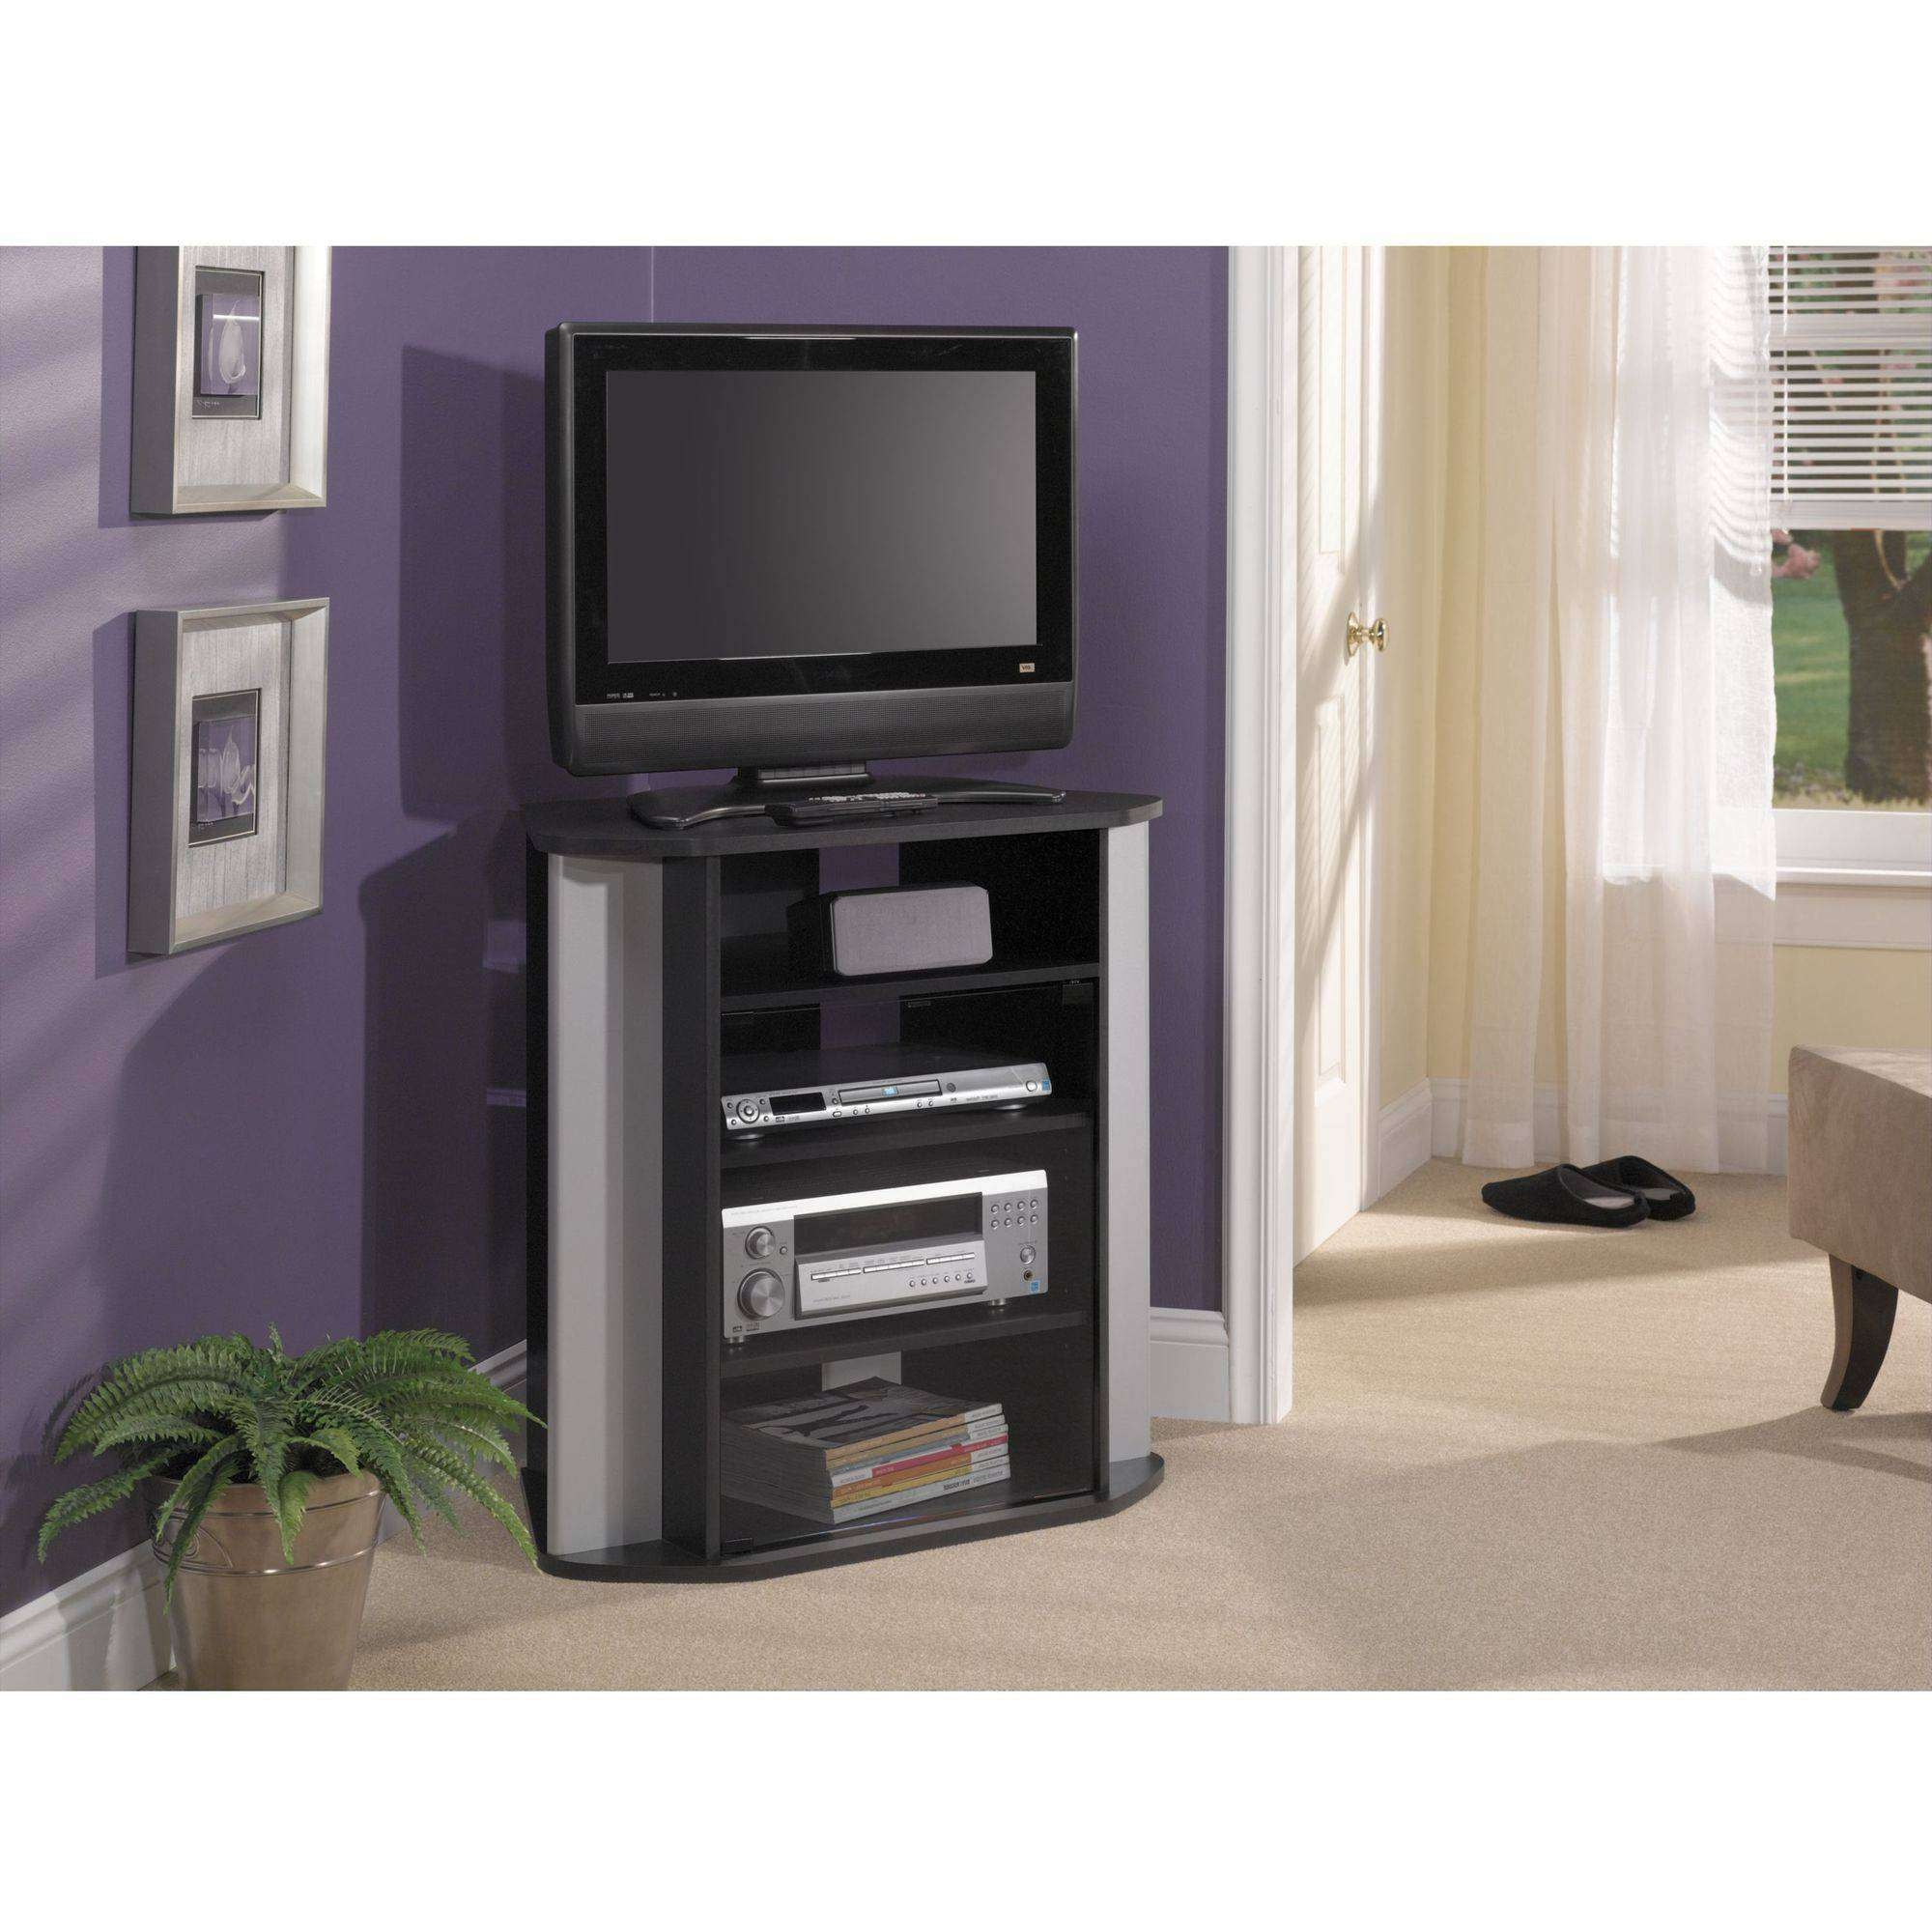 multiple tall black glass com walmart colors tvs bedroom with ip tv for up stand to cabinet tools convenience concepts no